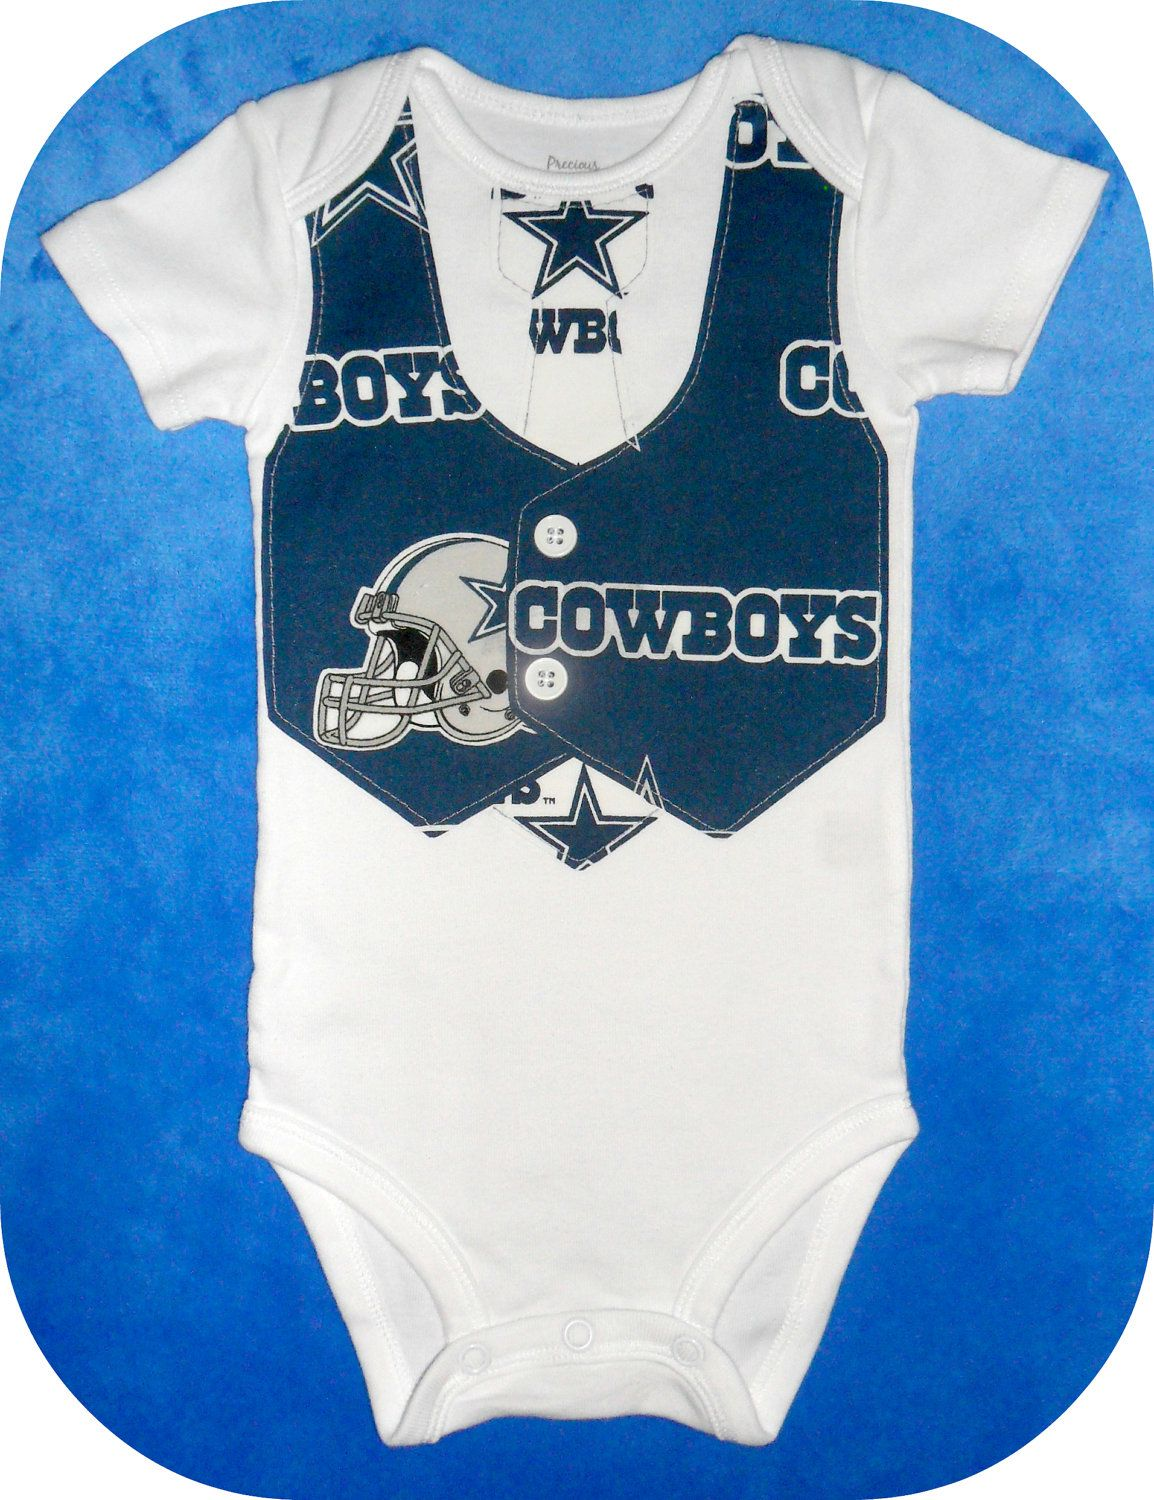 NFL Football Team Vest   Tie Baby Onesie or Toddler Shirt with Dallas  Cowboys...or CHOOSE your TEAM.  19.00 5bb180f73